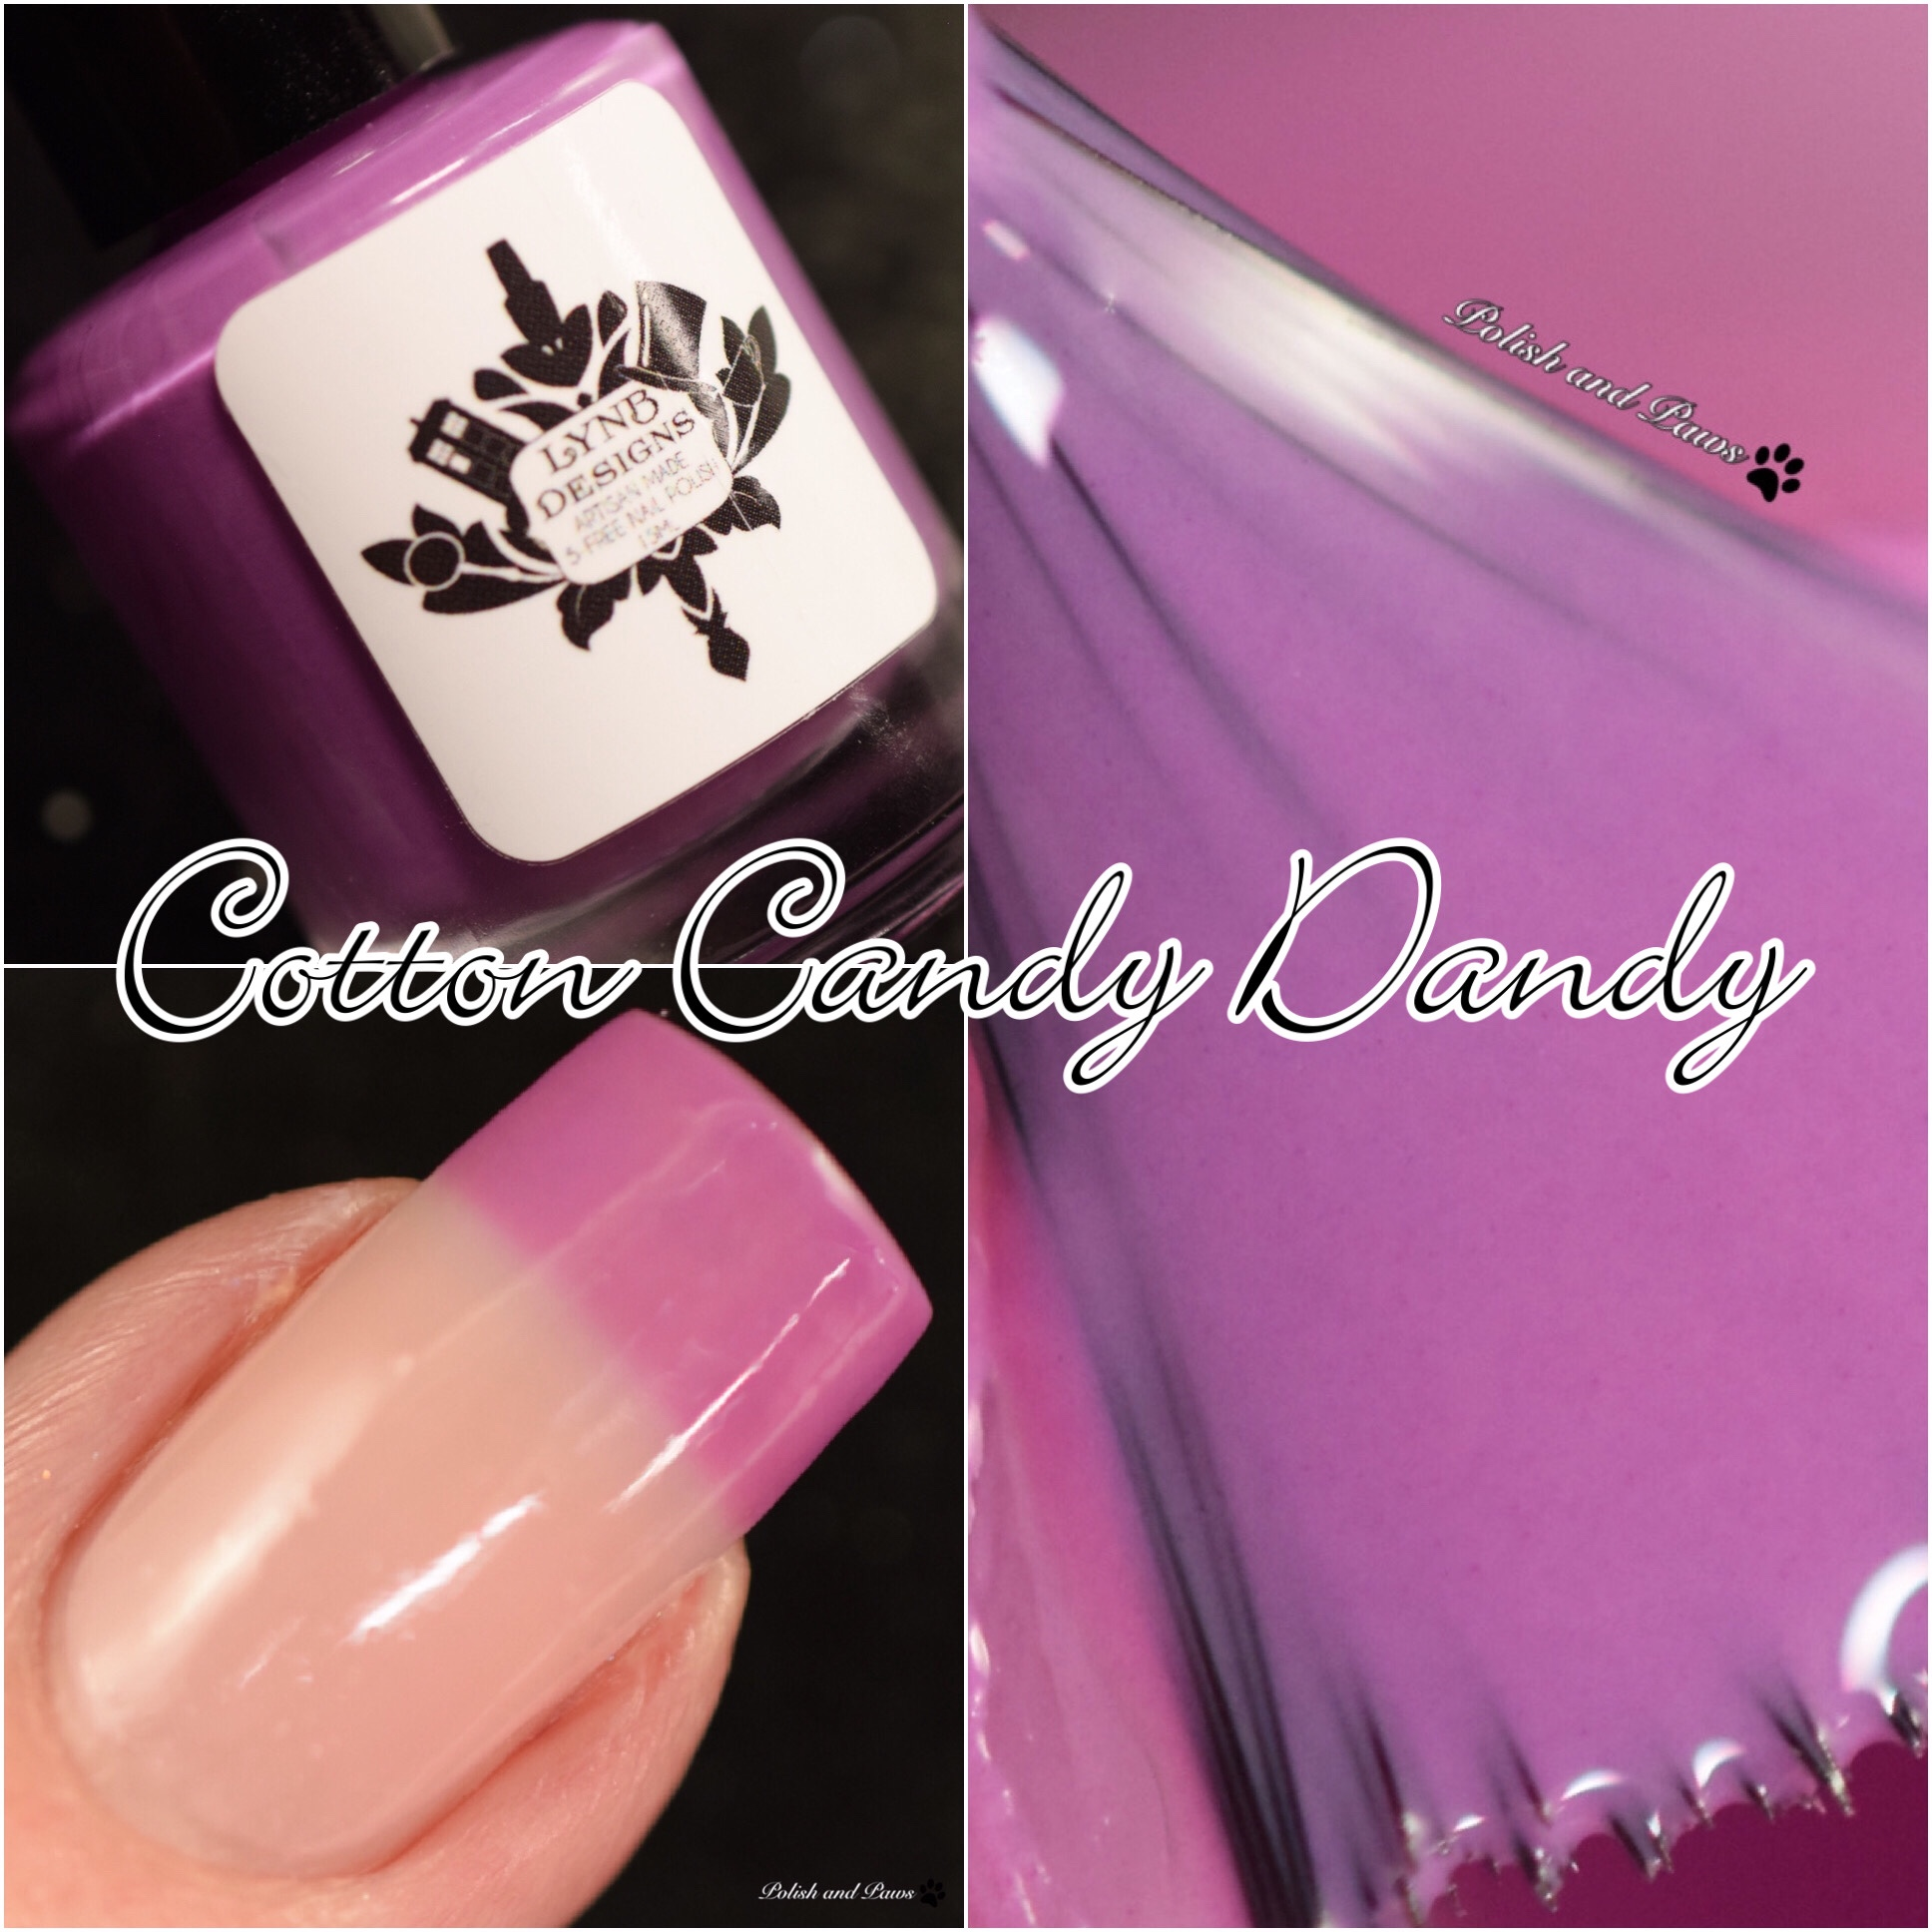 LynB Designs Cotton Candy Dandy